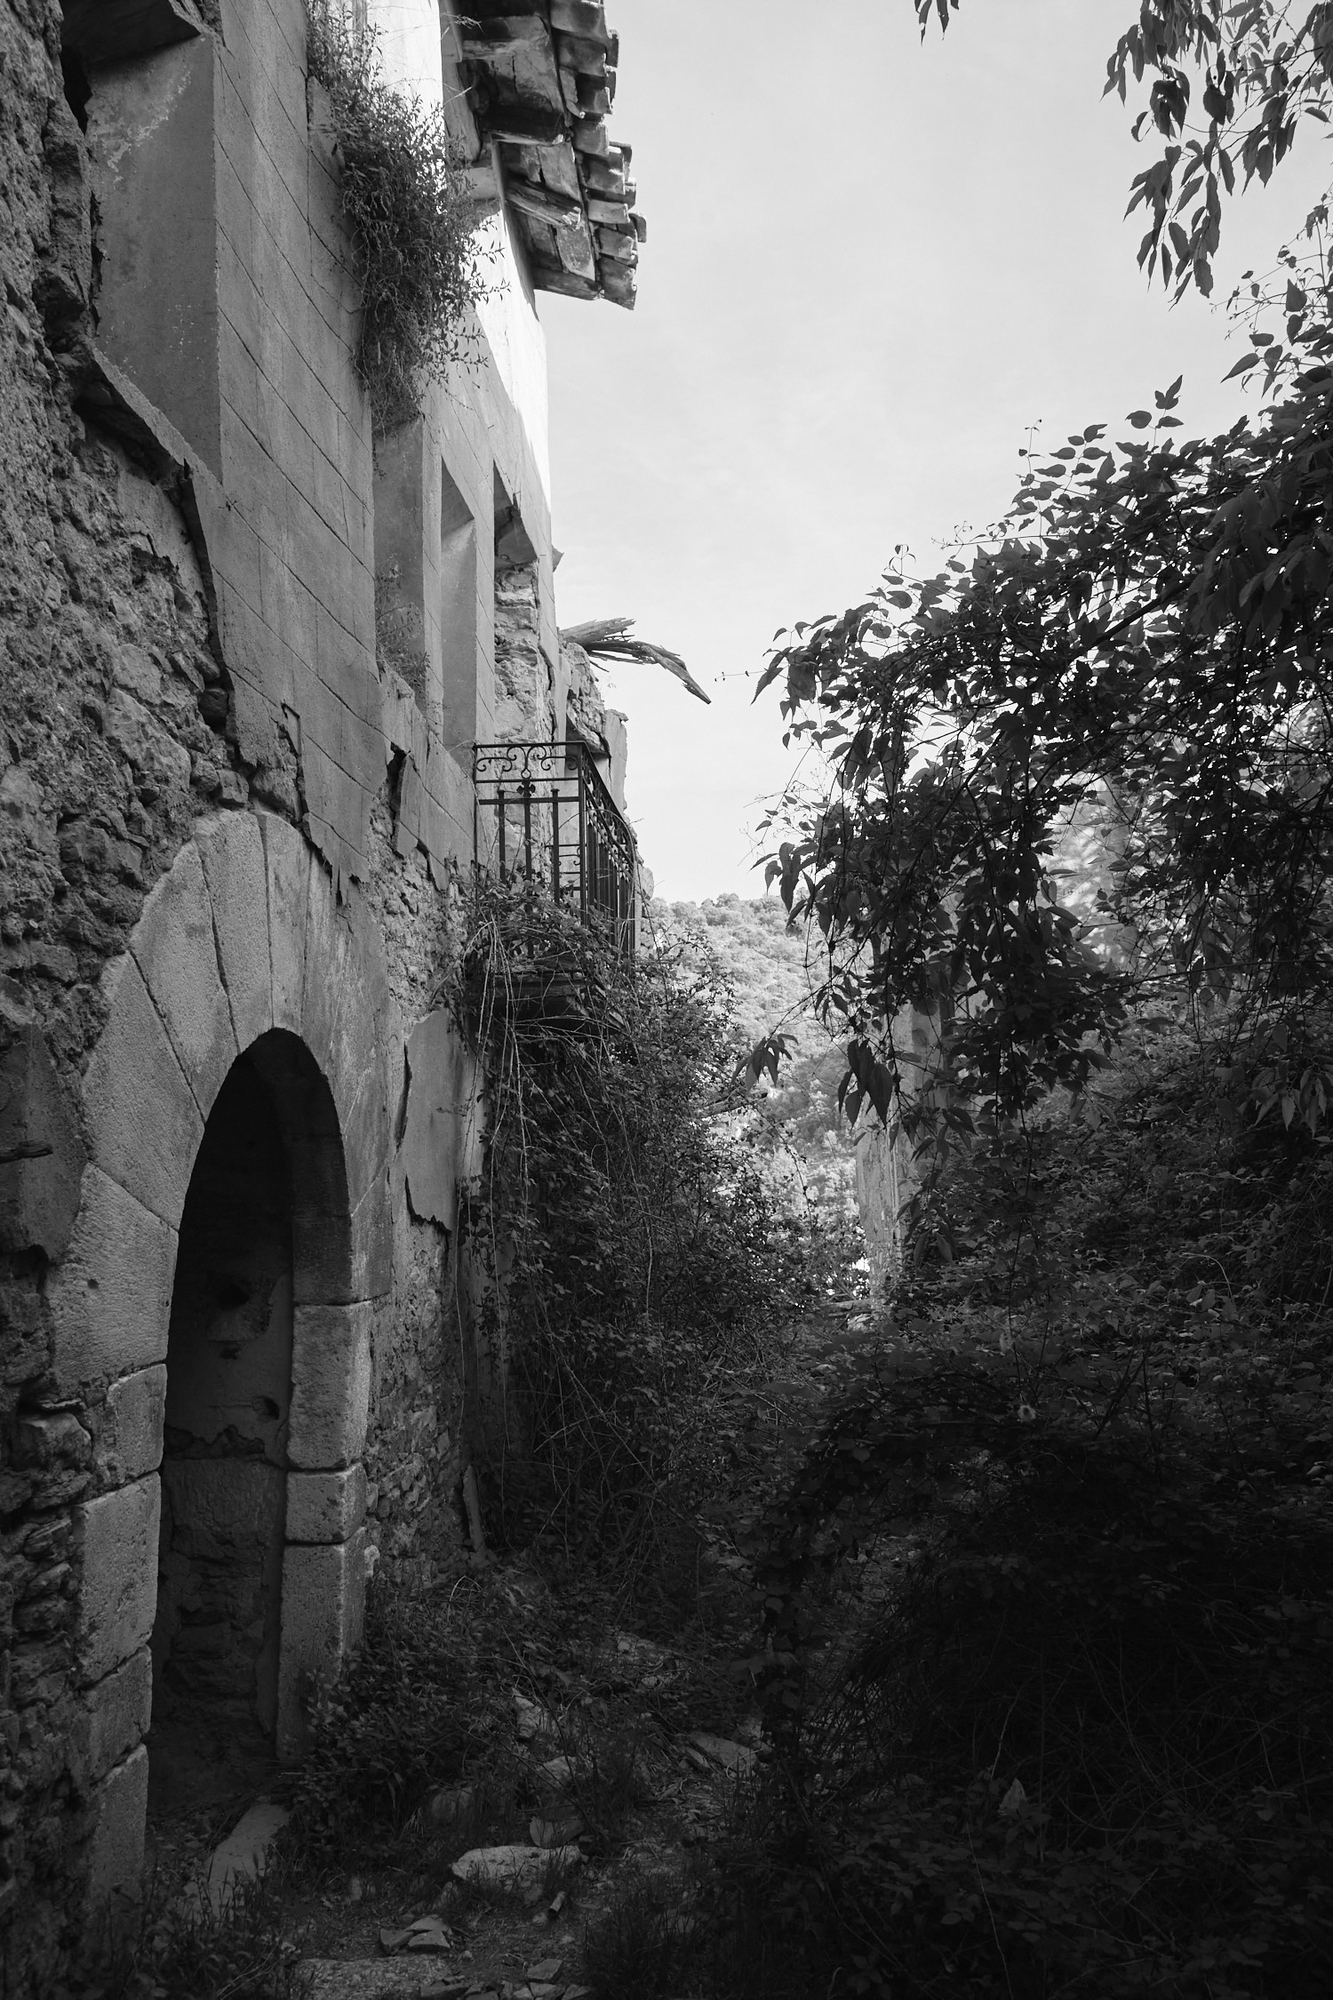 Entrance of a abandon house. The house is taken over by forest.